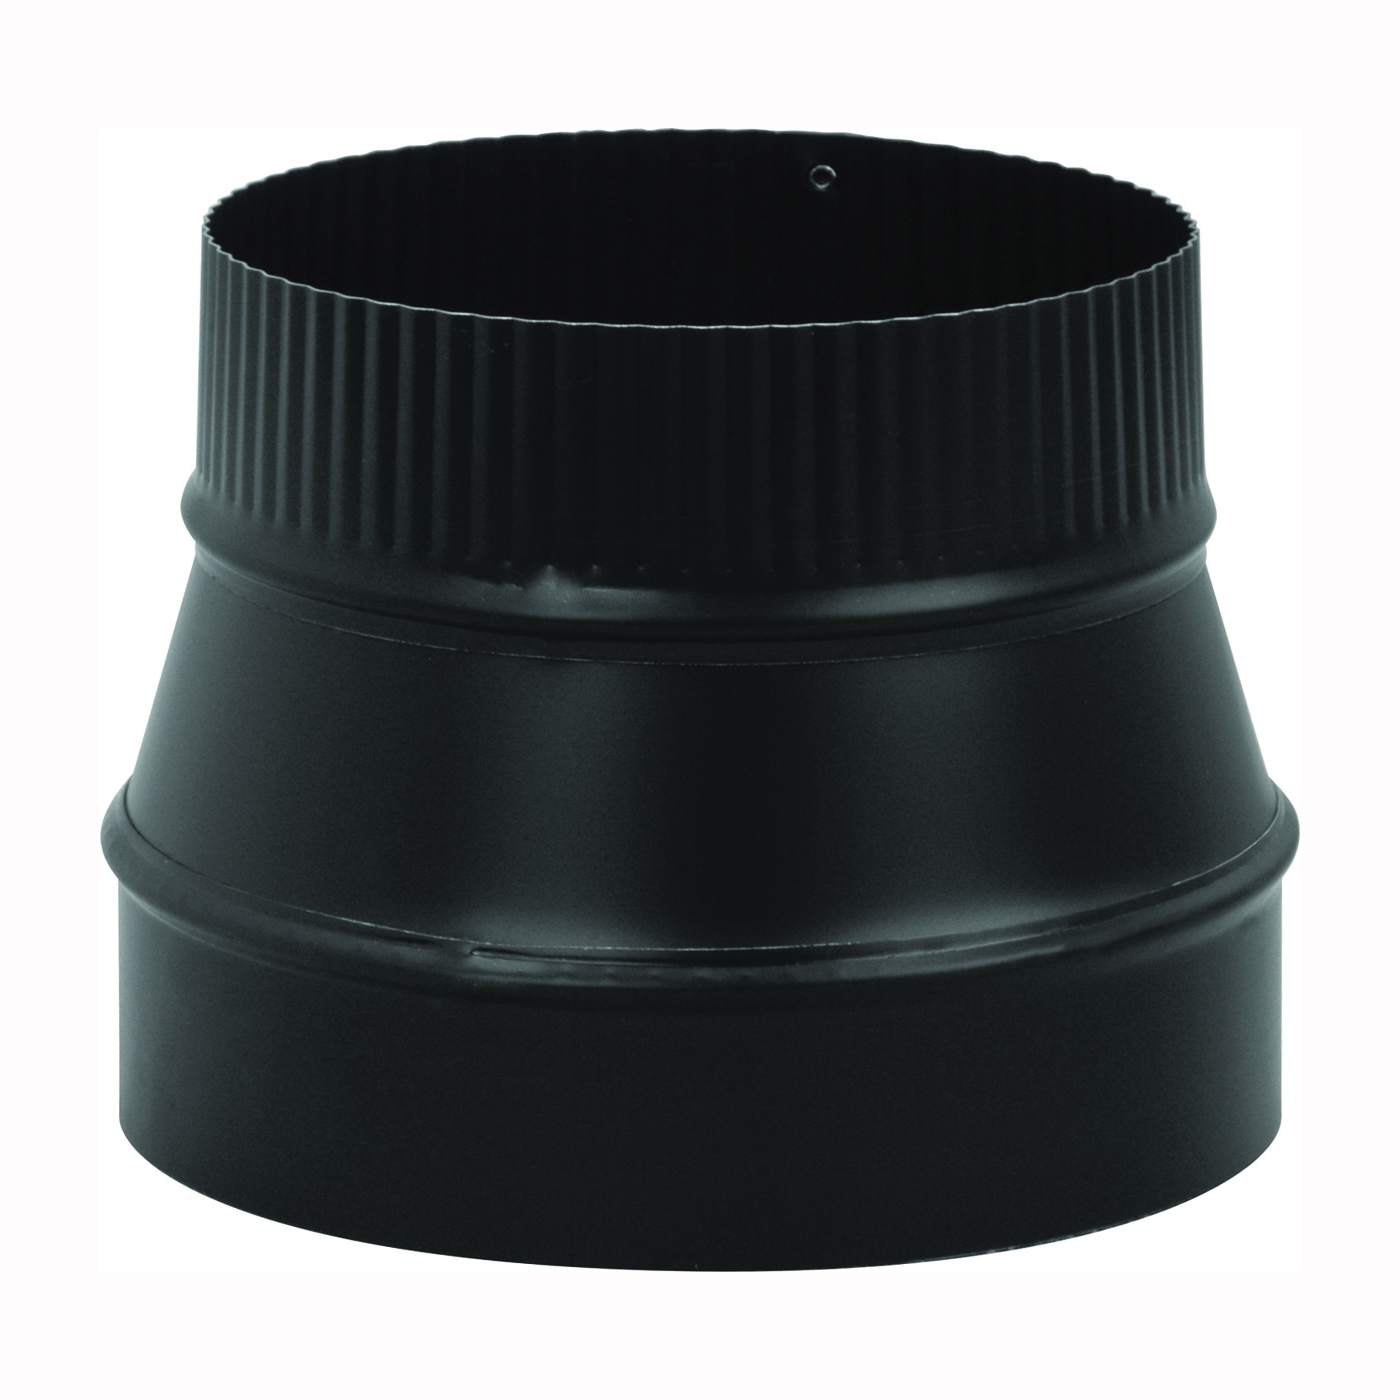 Picture of Imperial BM0079 Stove Pipe Reducer, 8 x 6 in, Crimp, 24 ga Thick Wall, Black, Matte